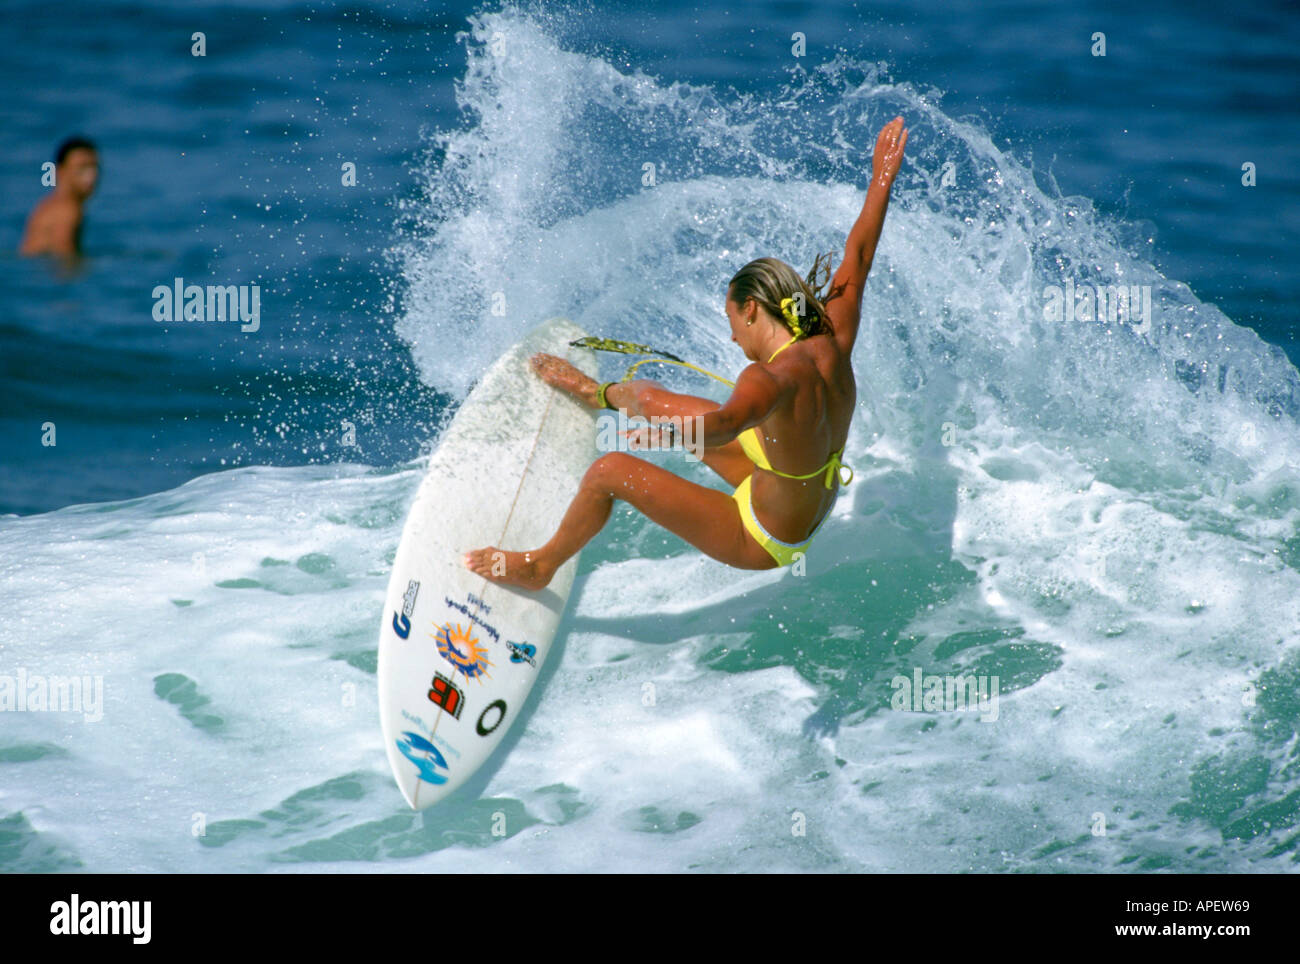 surfer girl layne beachley surfing action stock image